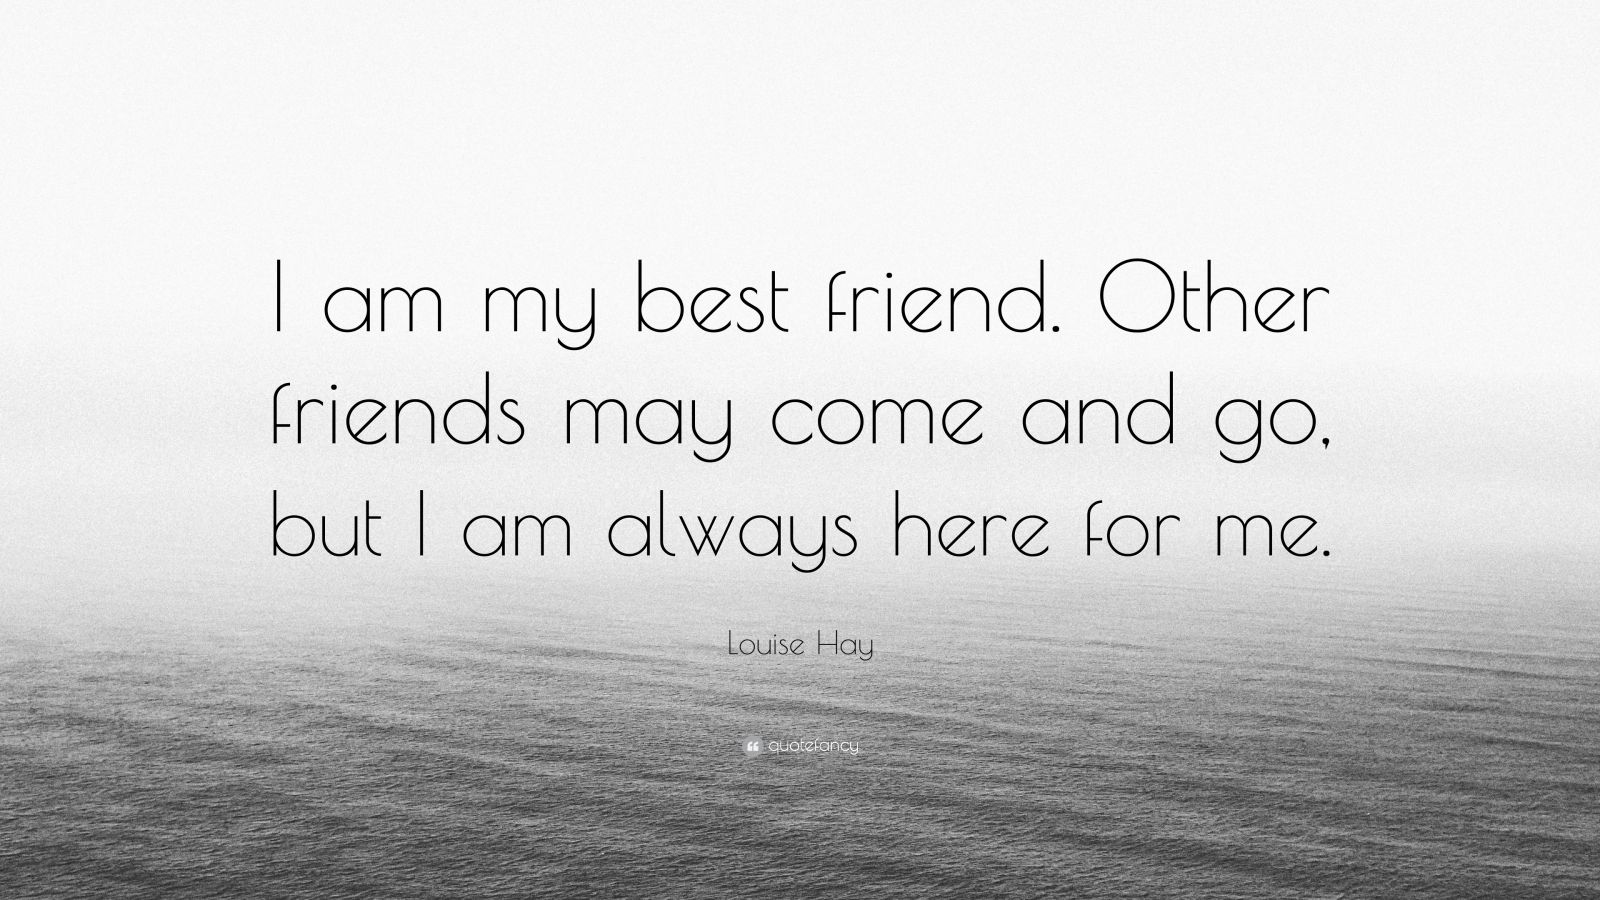 Harry Potter Quote About Friendship 100  Quote Friendship Harry Potter   Quotes From Harry Potter